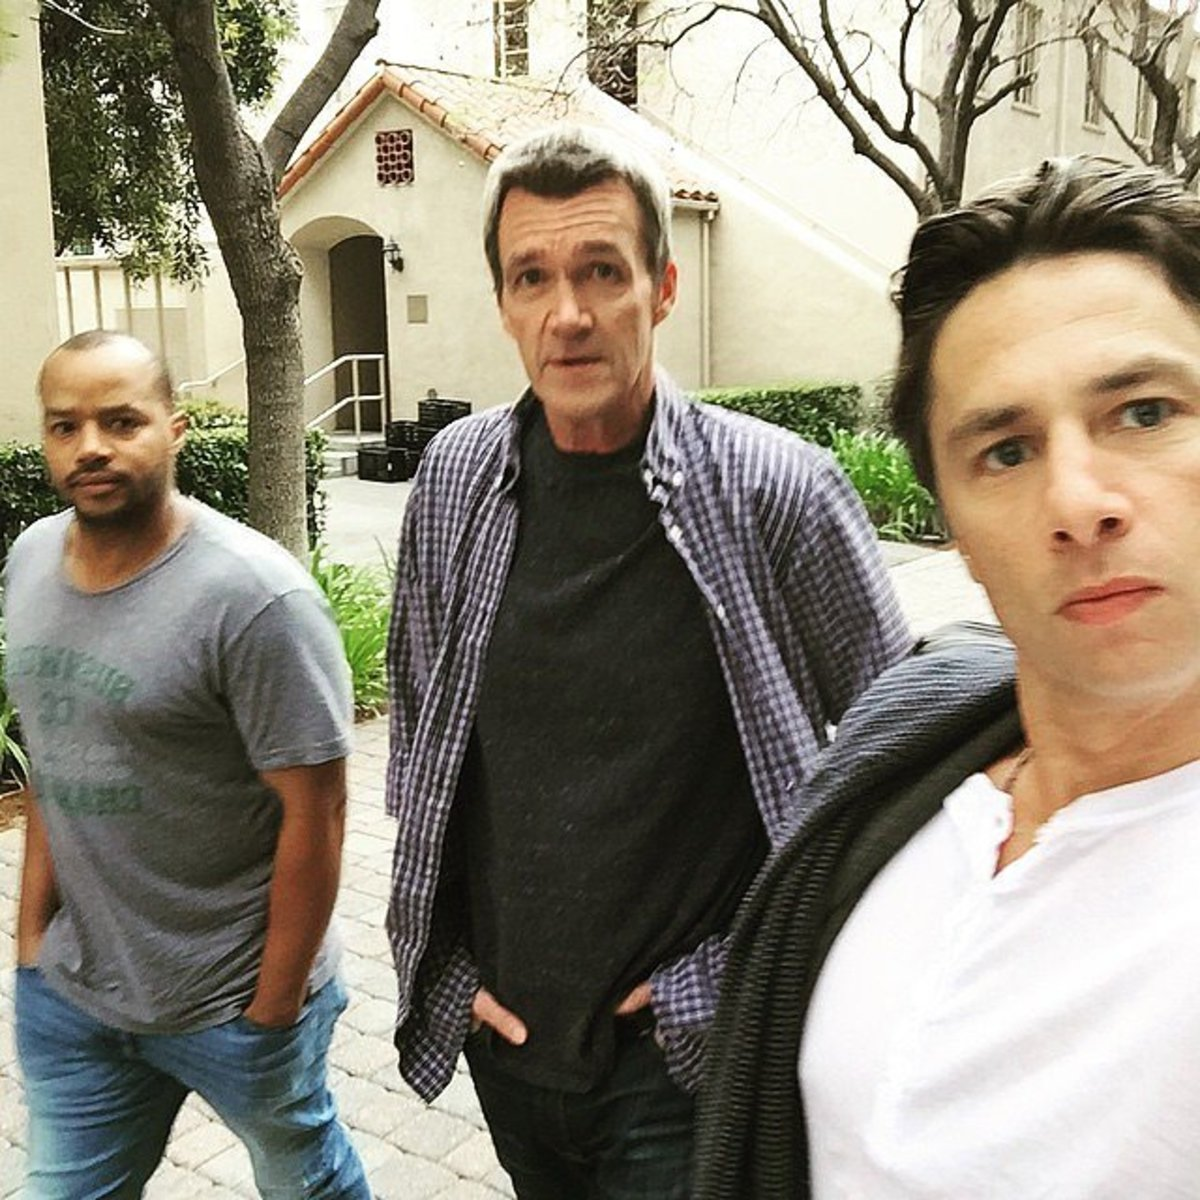 Even Neil Flynn has reunited with Faison and Braff, this time for the cameo appearance on Undateable.